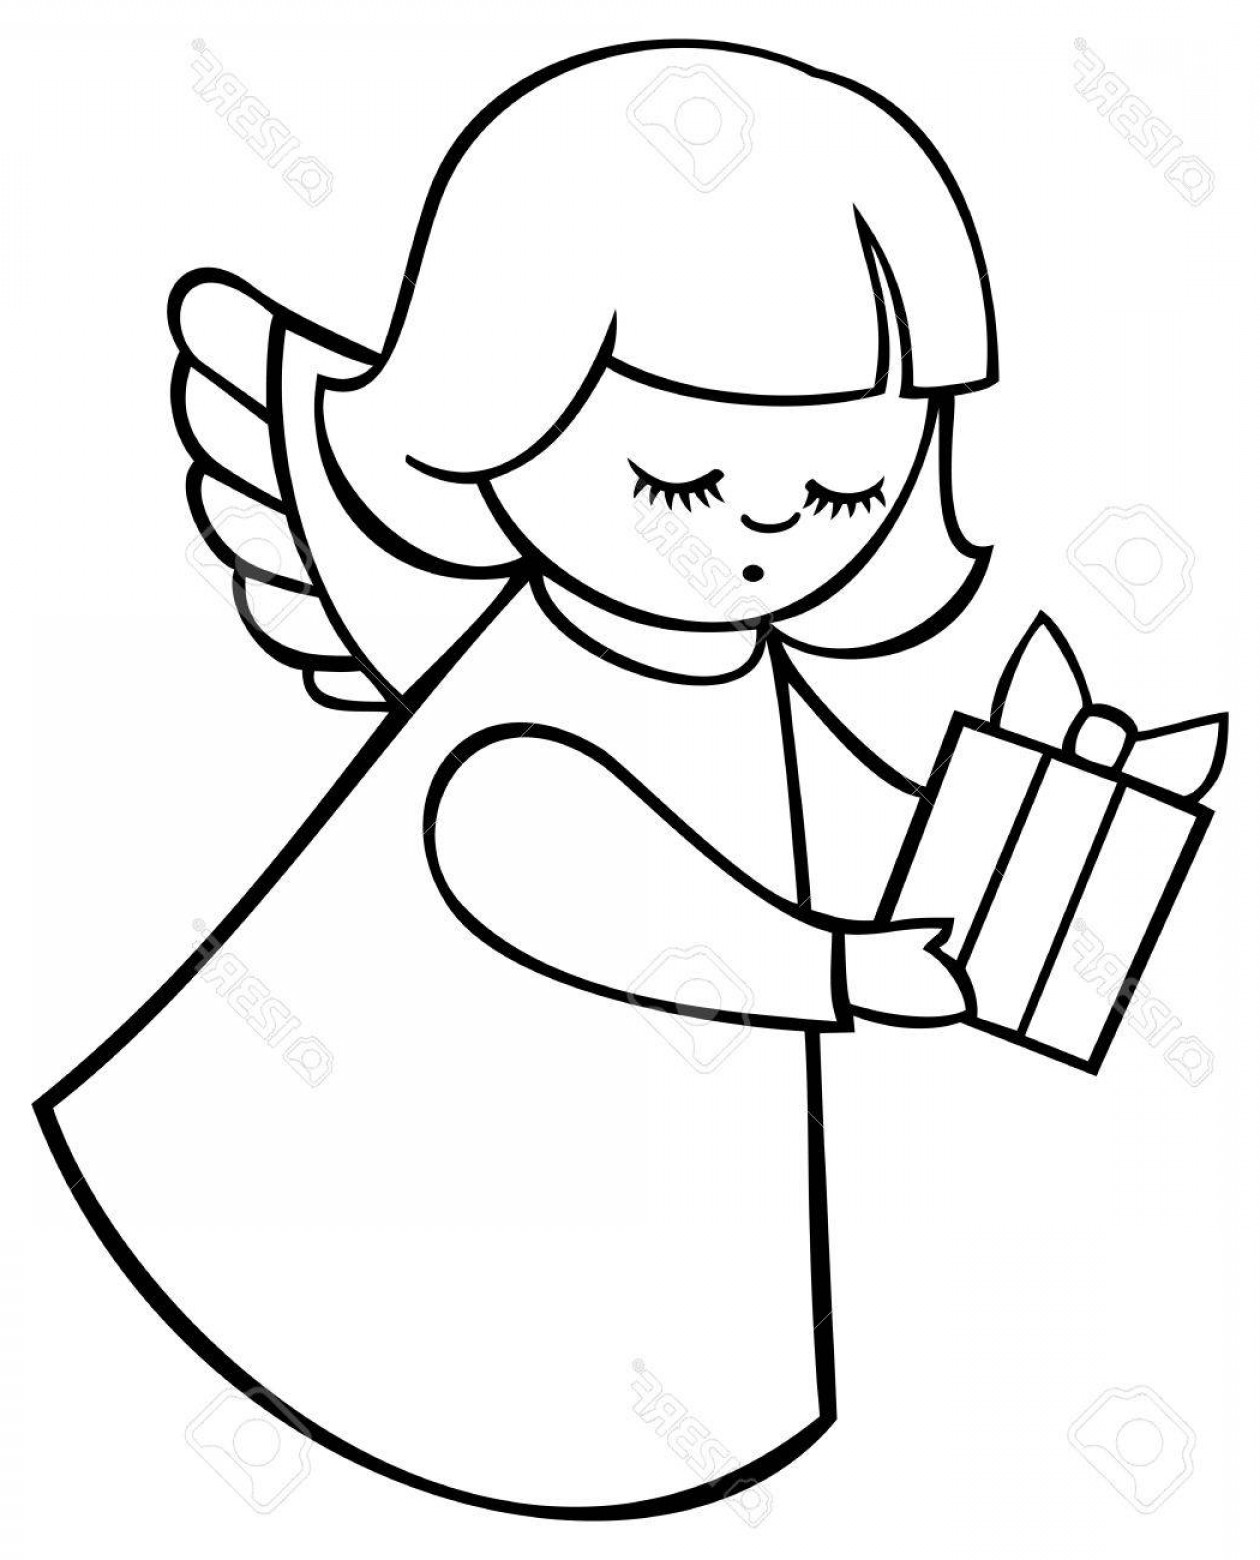 Photostock Vector Contour Image Of Angel Flying With A Gift.